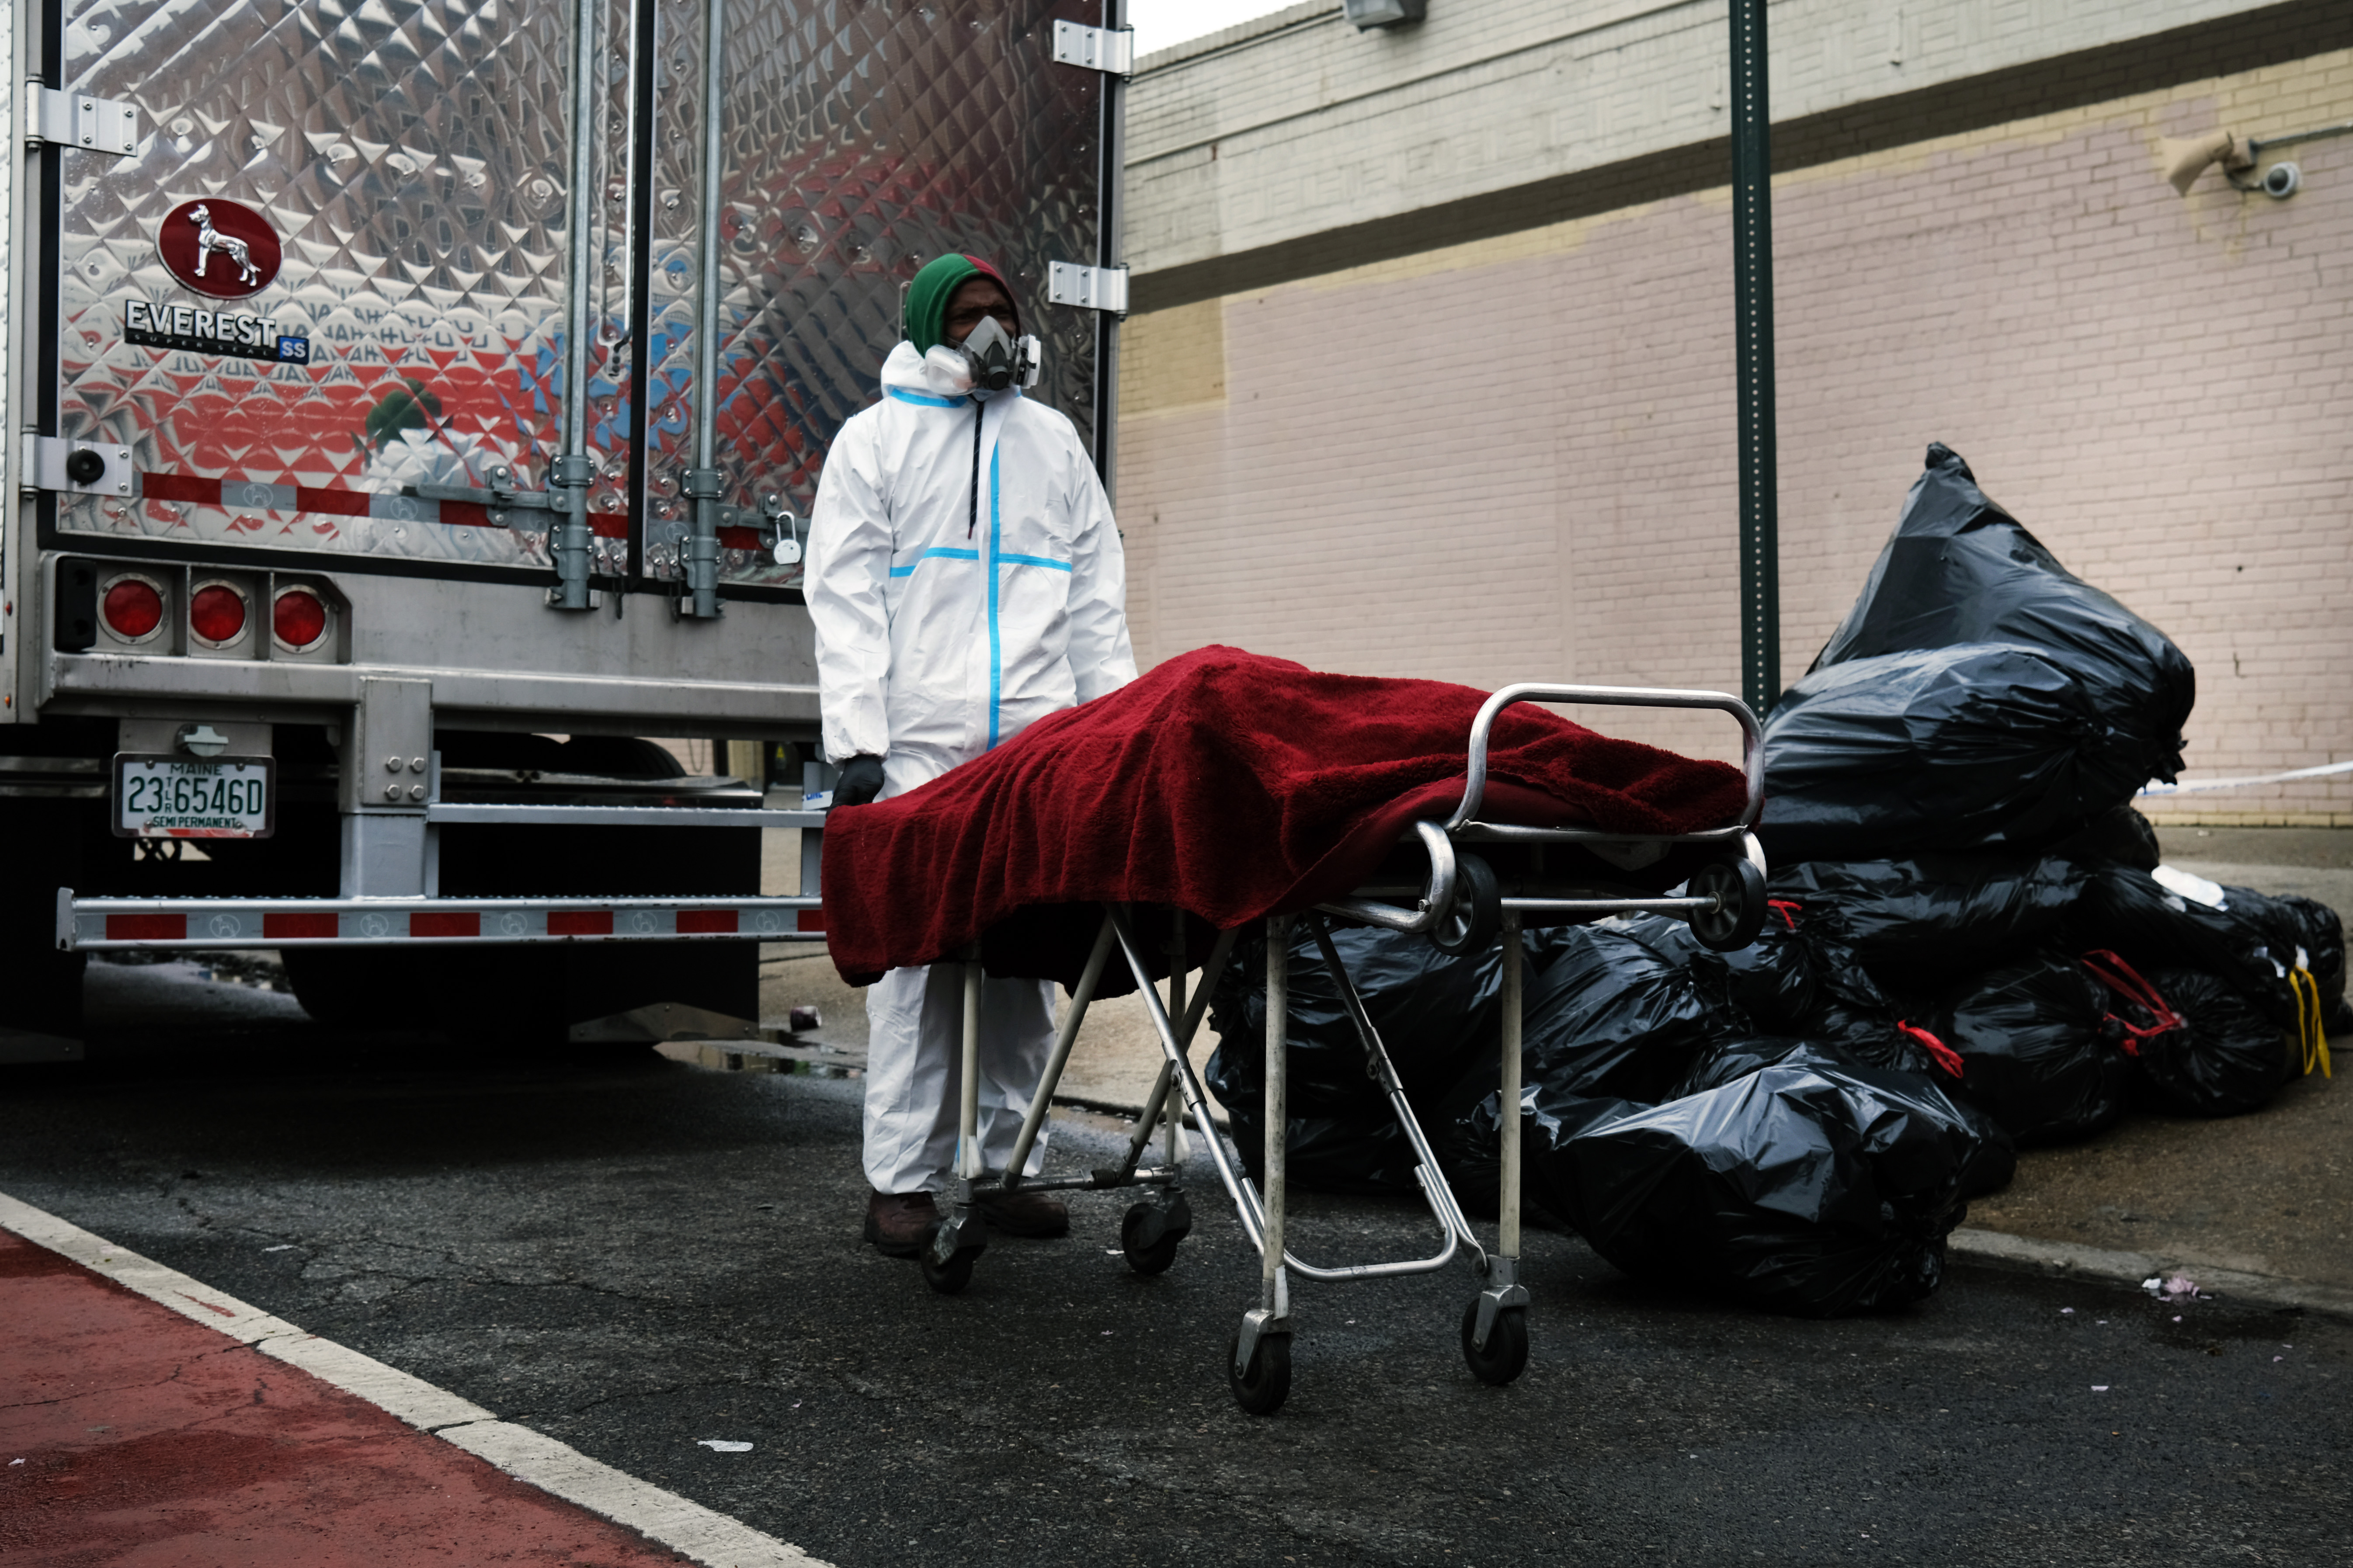 A body is moved outside the Andrew T. Cleckley Funeral Home in Brooklyn, New York, on April 30. The New York State Department of Health has suspended the license of the Brooklyn funeral home where dozens of bodies were discovered in trucks on April 29, according to a statement by the state health commissioner.